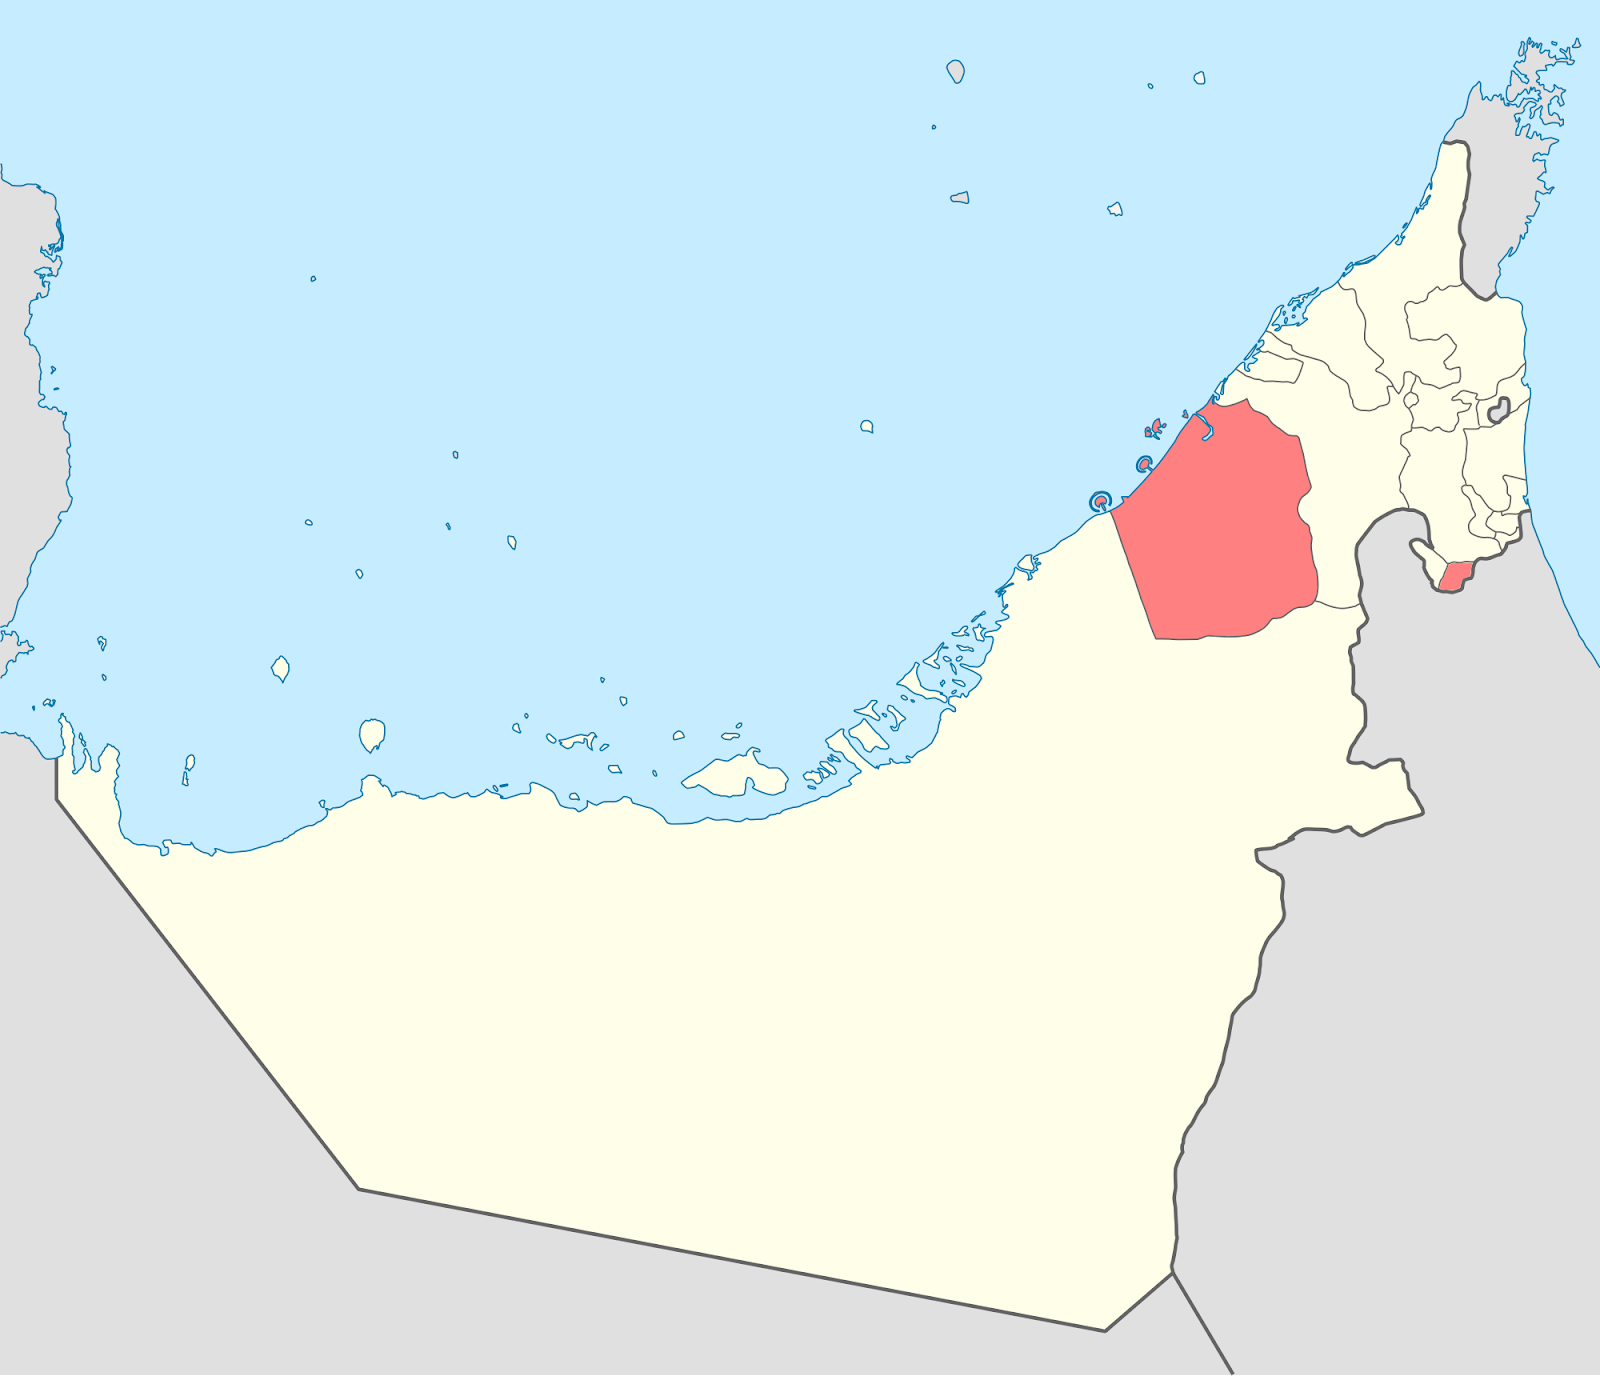 https://upload.wikimedia.org/wikipedia/commons/thumb/a/a1/Map_of_Dubai_blank.svg/2000px-Map_of_Dubai_blank.svg.png